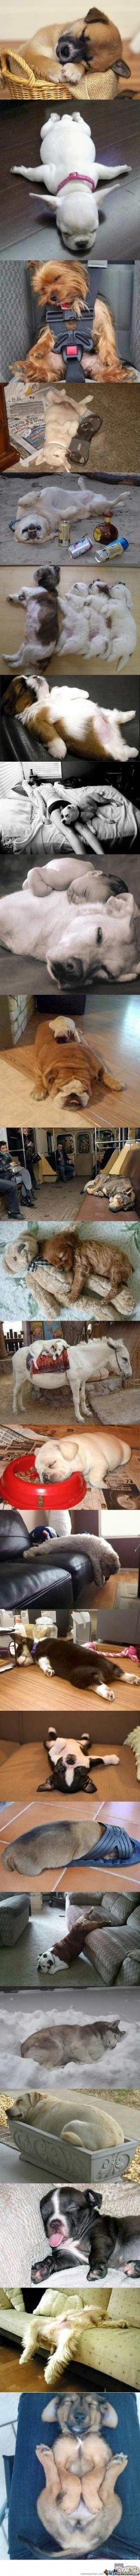 Oh my adorable ness!: Sleeping Dogs, Doggie, Animals, Pet, Sleepy Puppies, Puppys, Sleep Attack, Baby, Sleeping Puppies